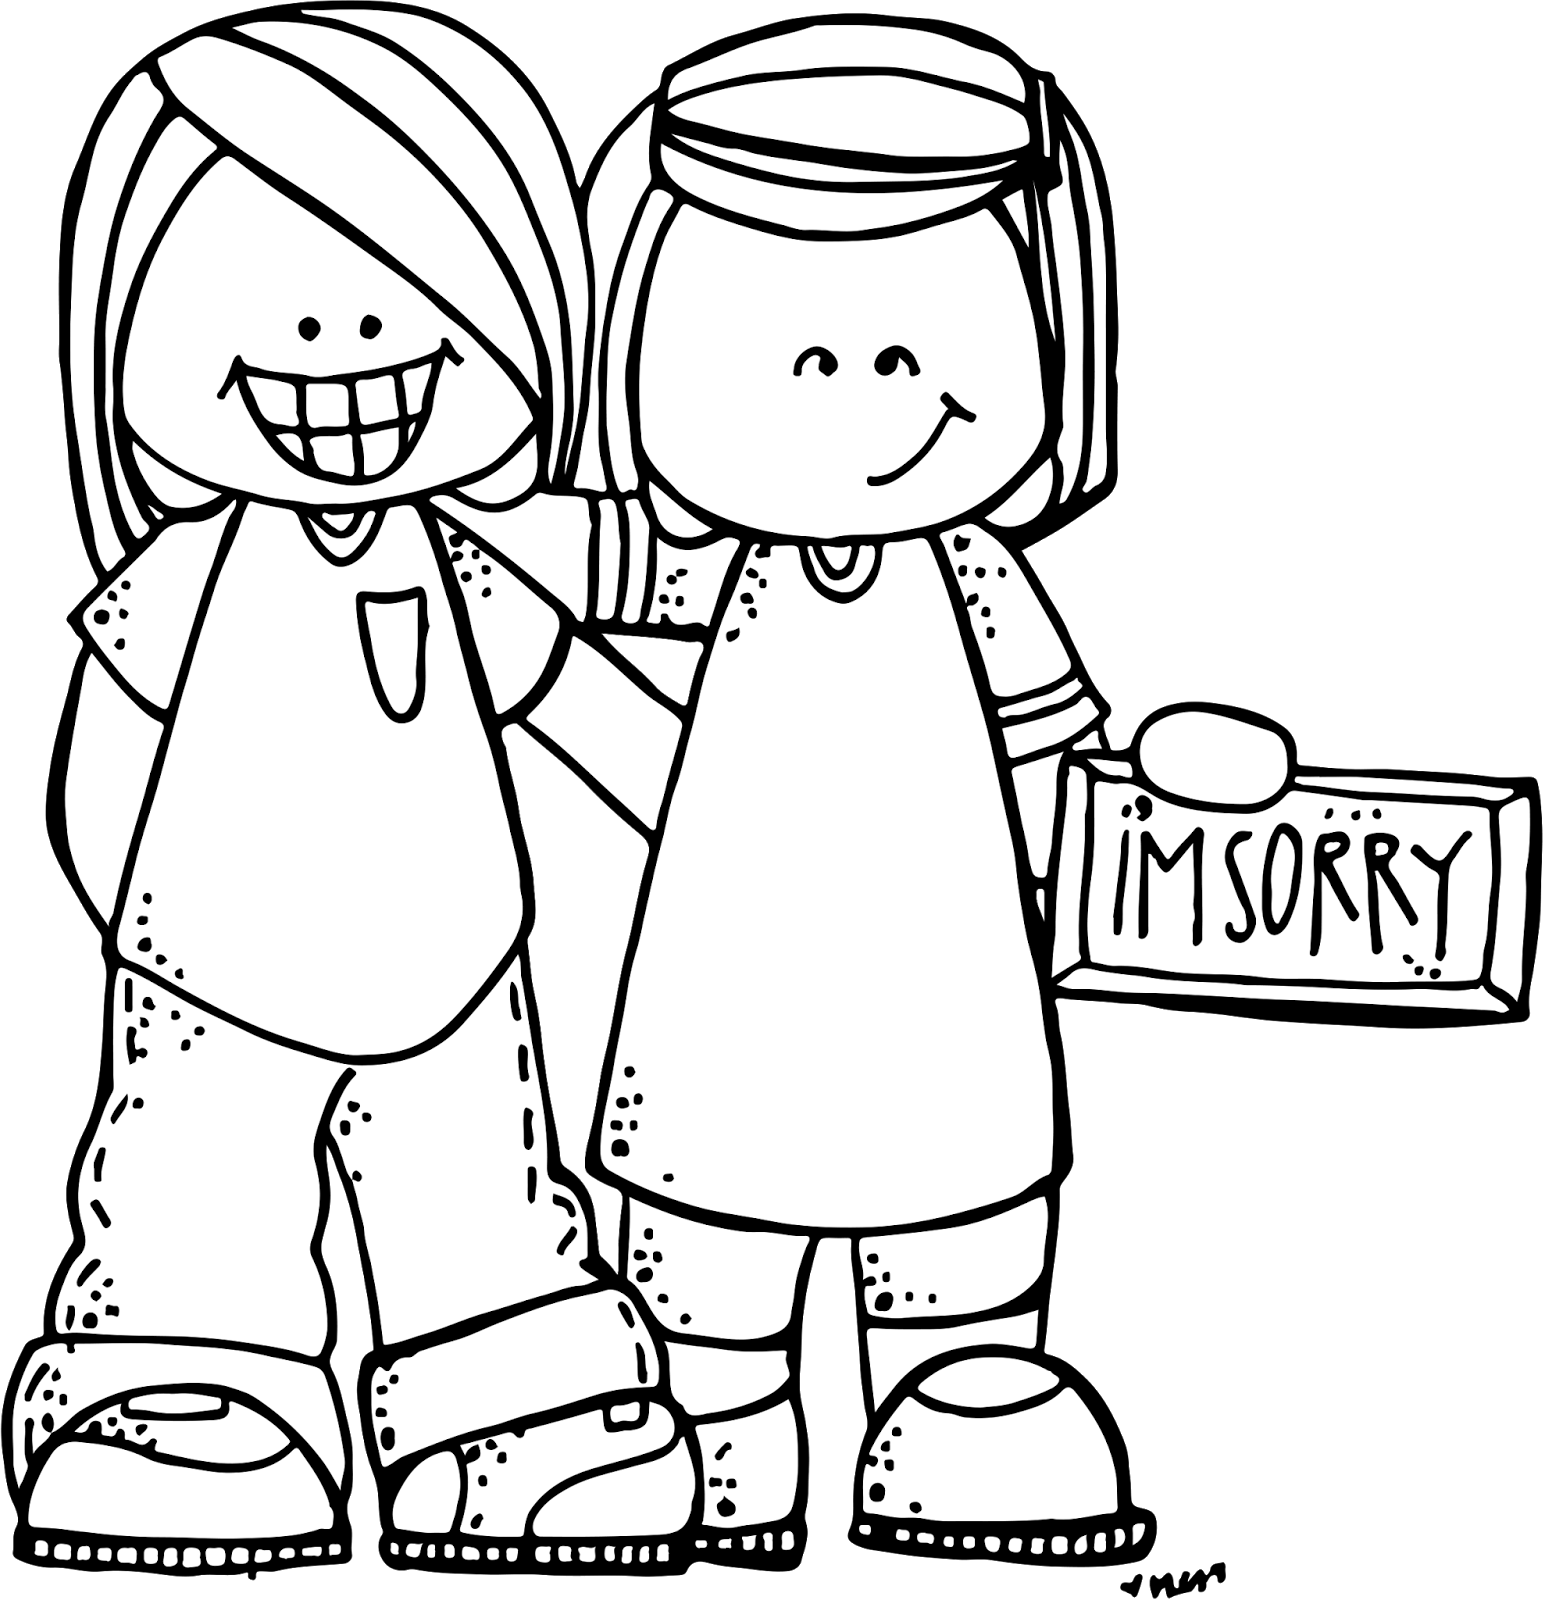 Coloring pages about forgiveness ~ Forgive Clipart | Free download best Forgive Clipart on ...